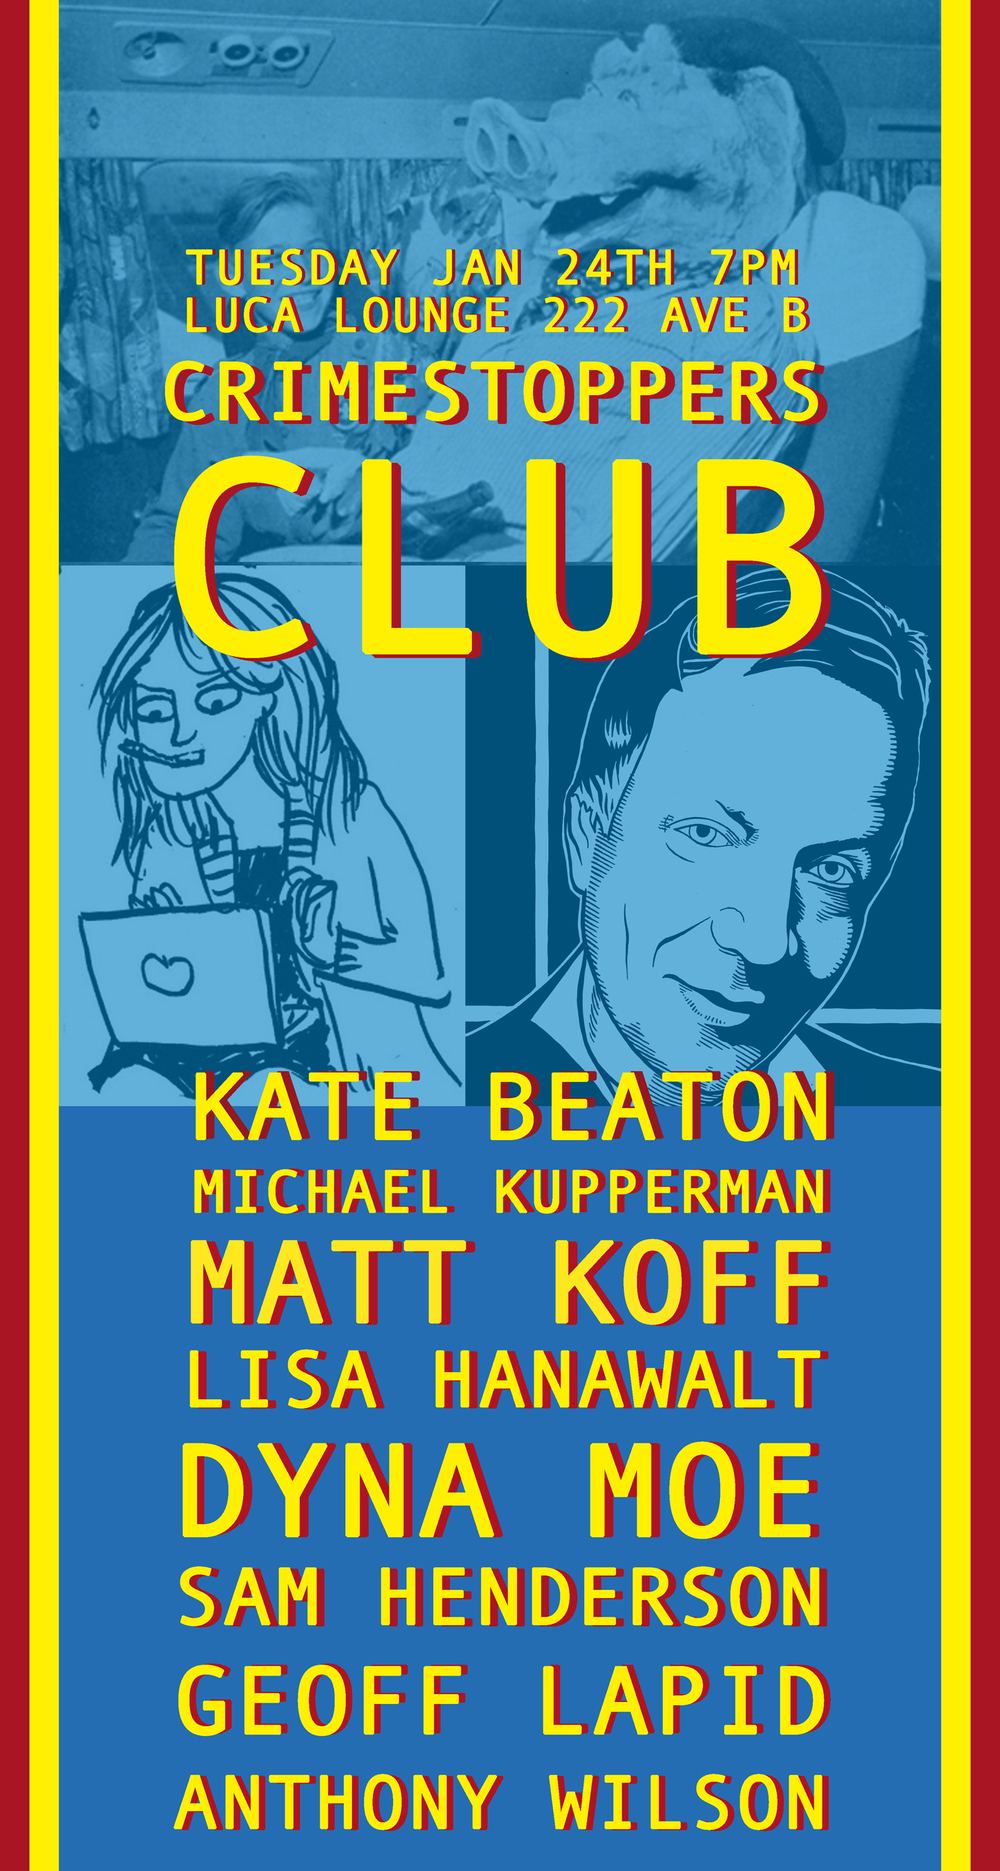 Crimestoppers Club was my show with Kate Beaton, where we combined comics (sequential art) with comics (standup comedians).